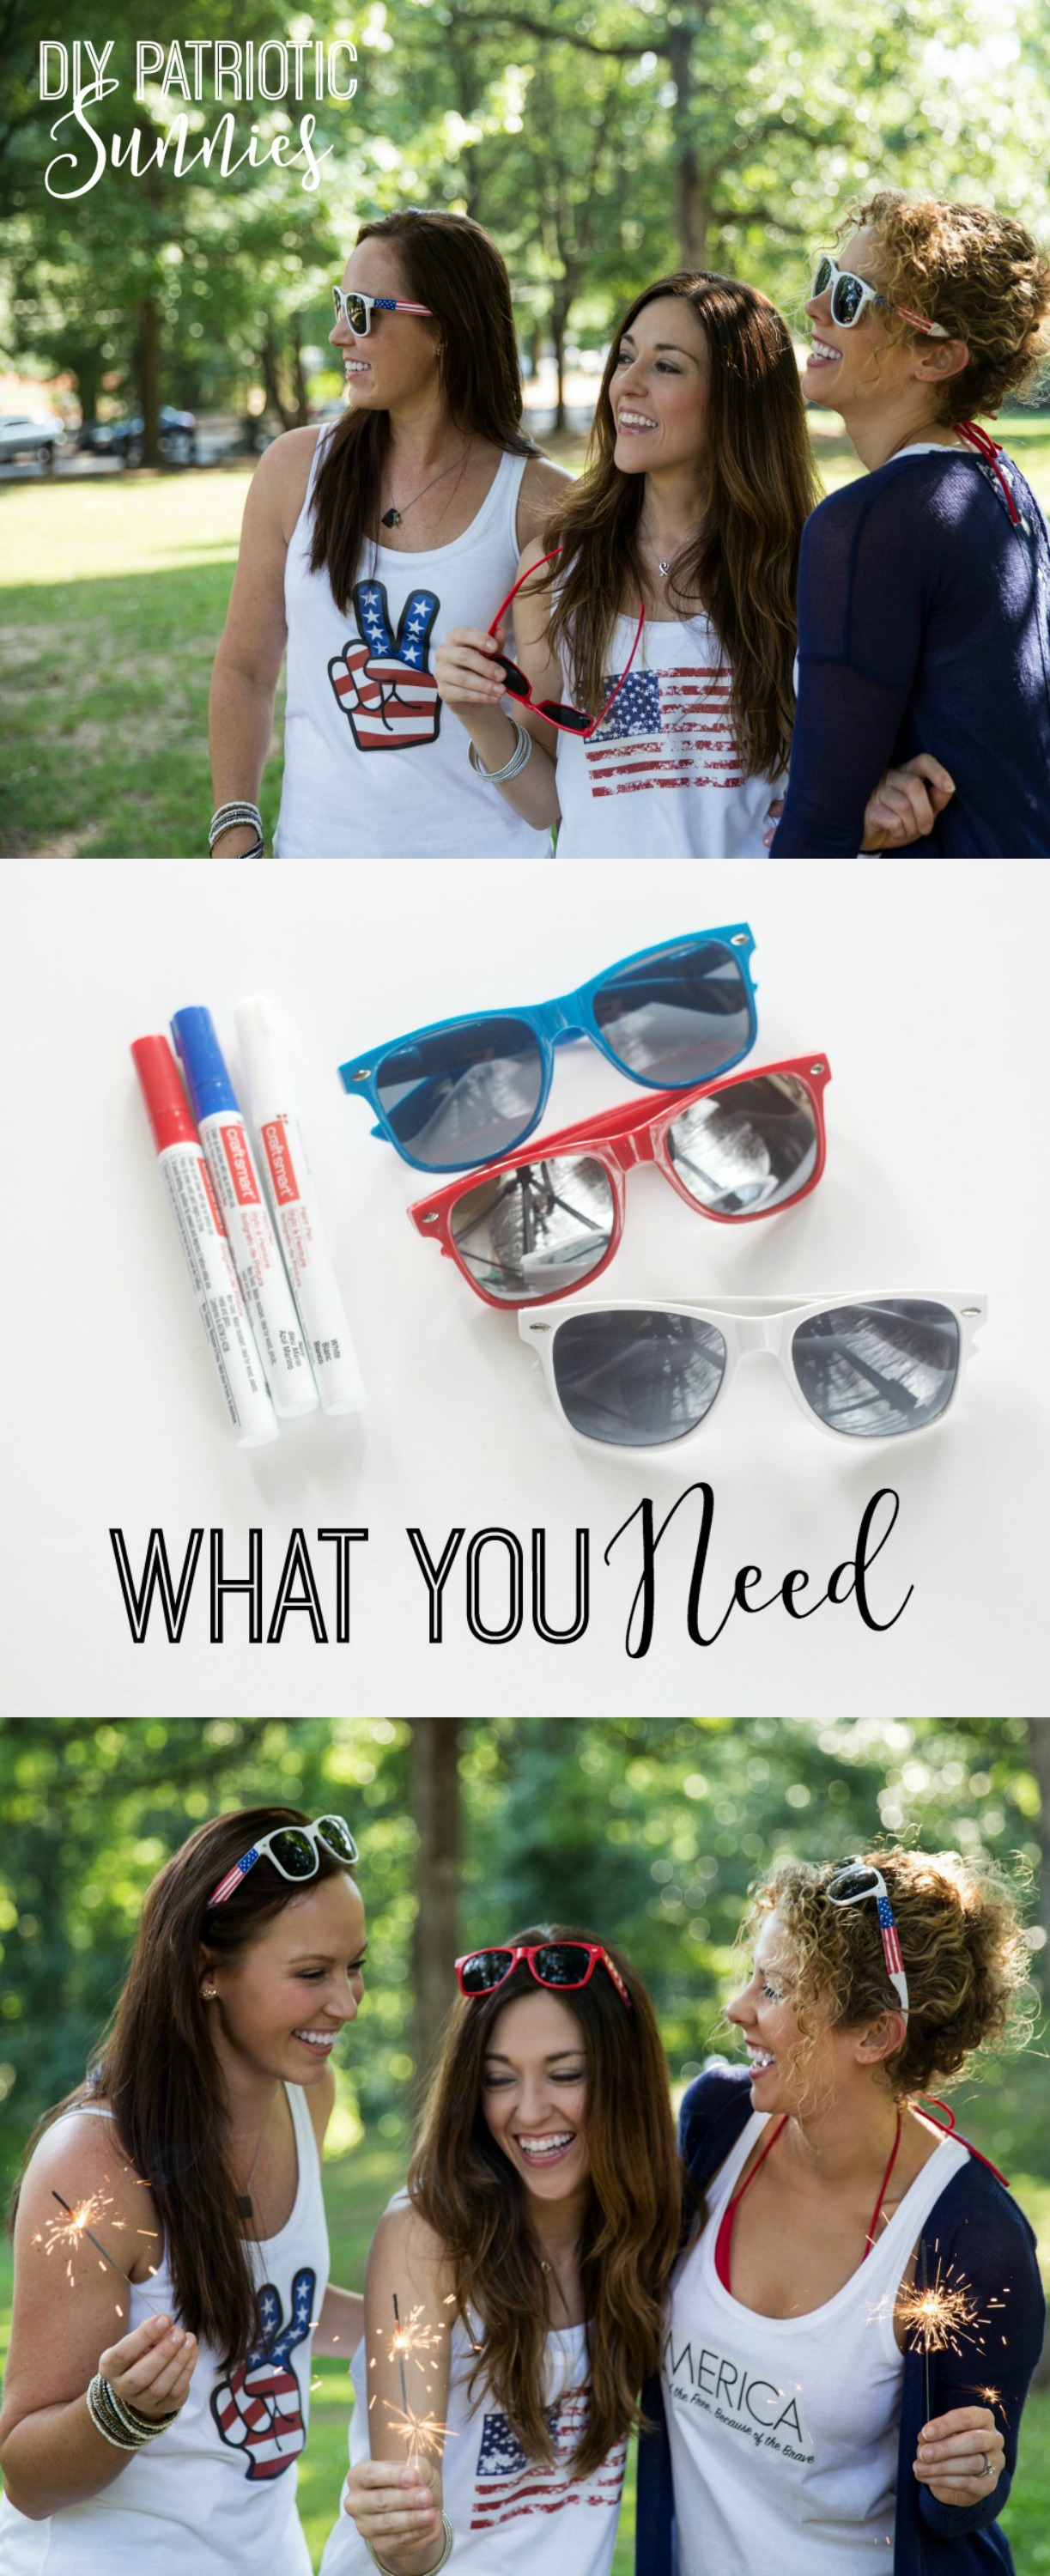 DIY Patriotic Sunglasses by PartiesforPennies.com | 4th of July, Memorial Day, Fourth of July, DIY Sunnies, Paint Pen, Craft, Summer Activity, Party Favor